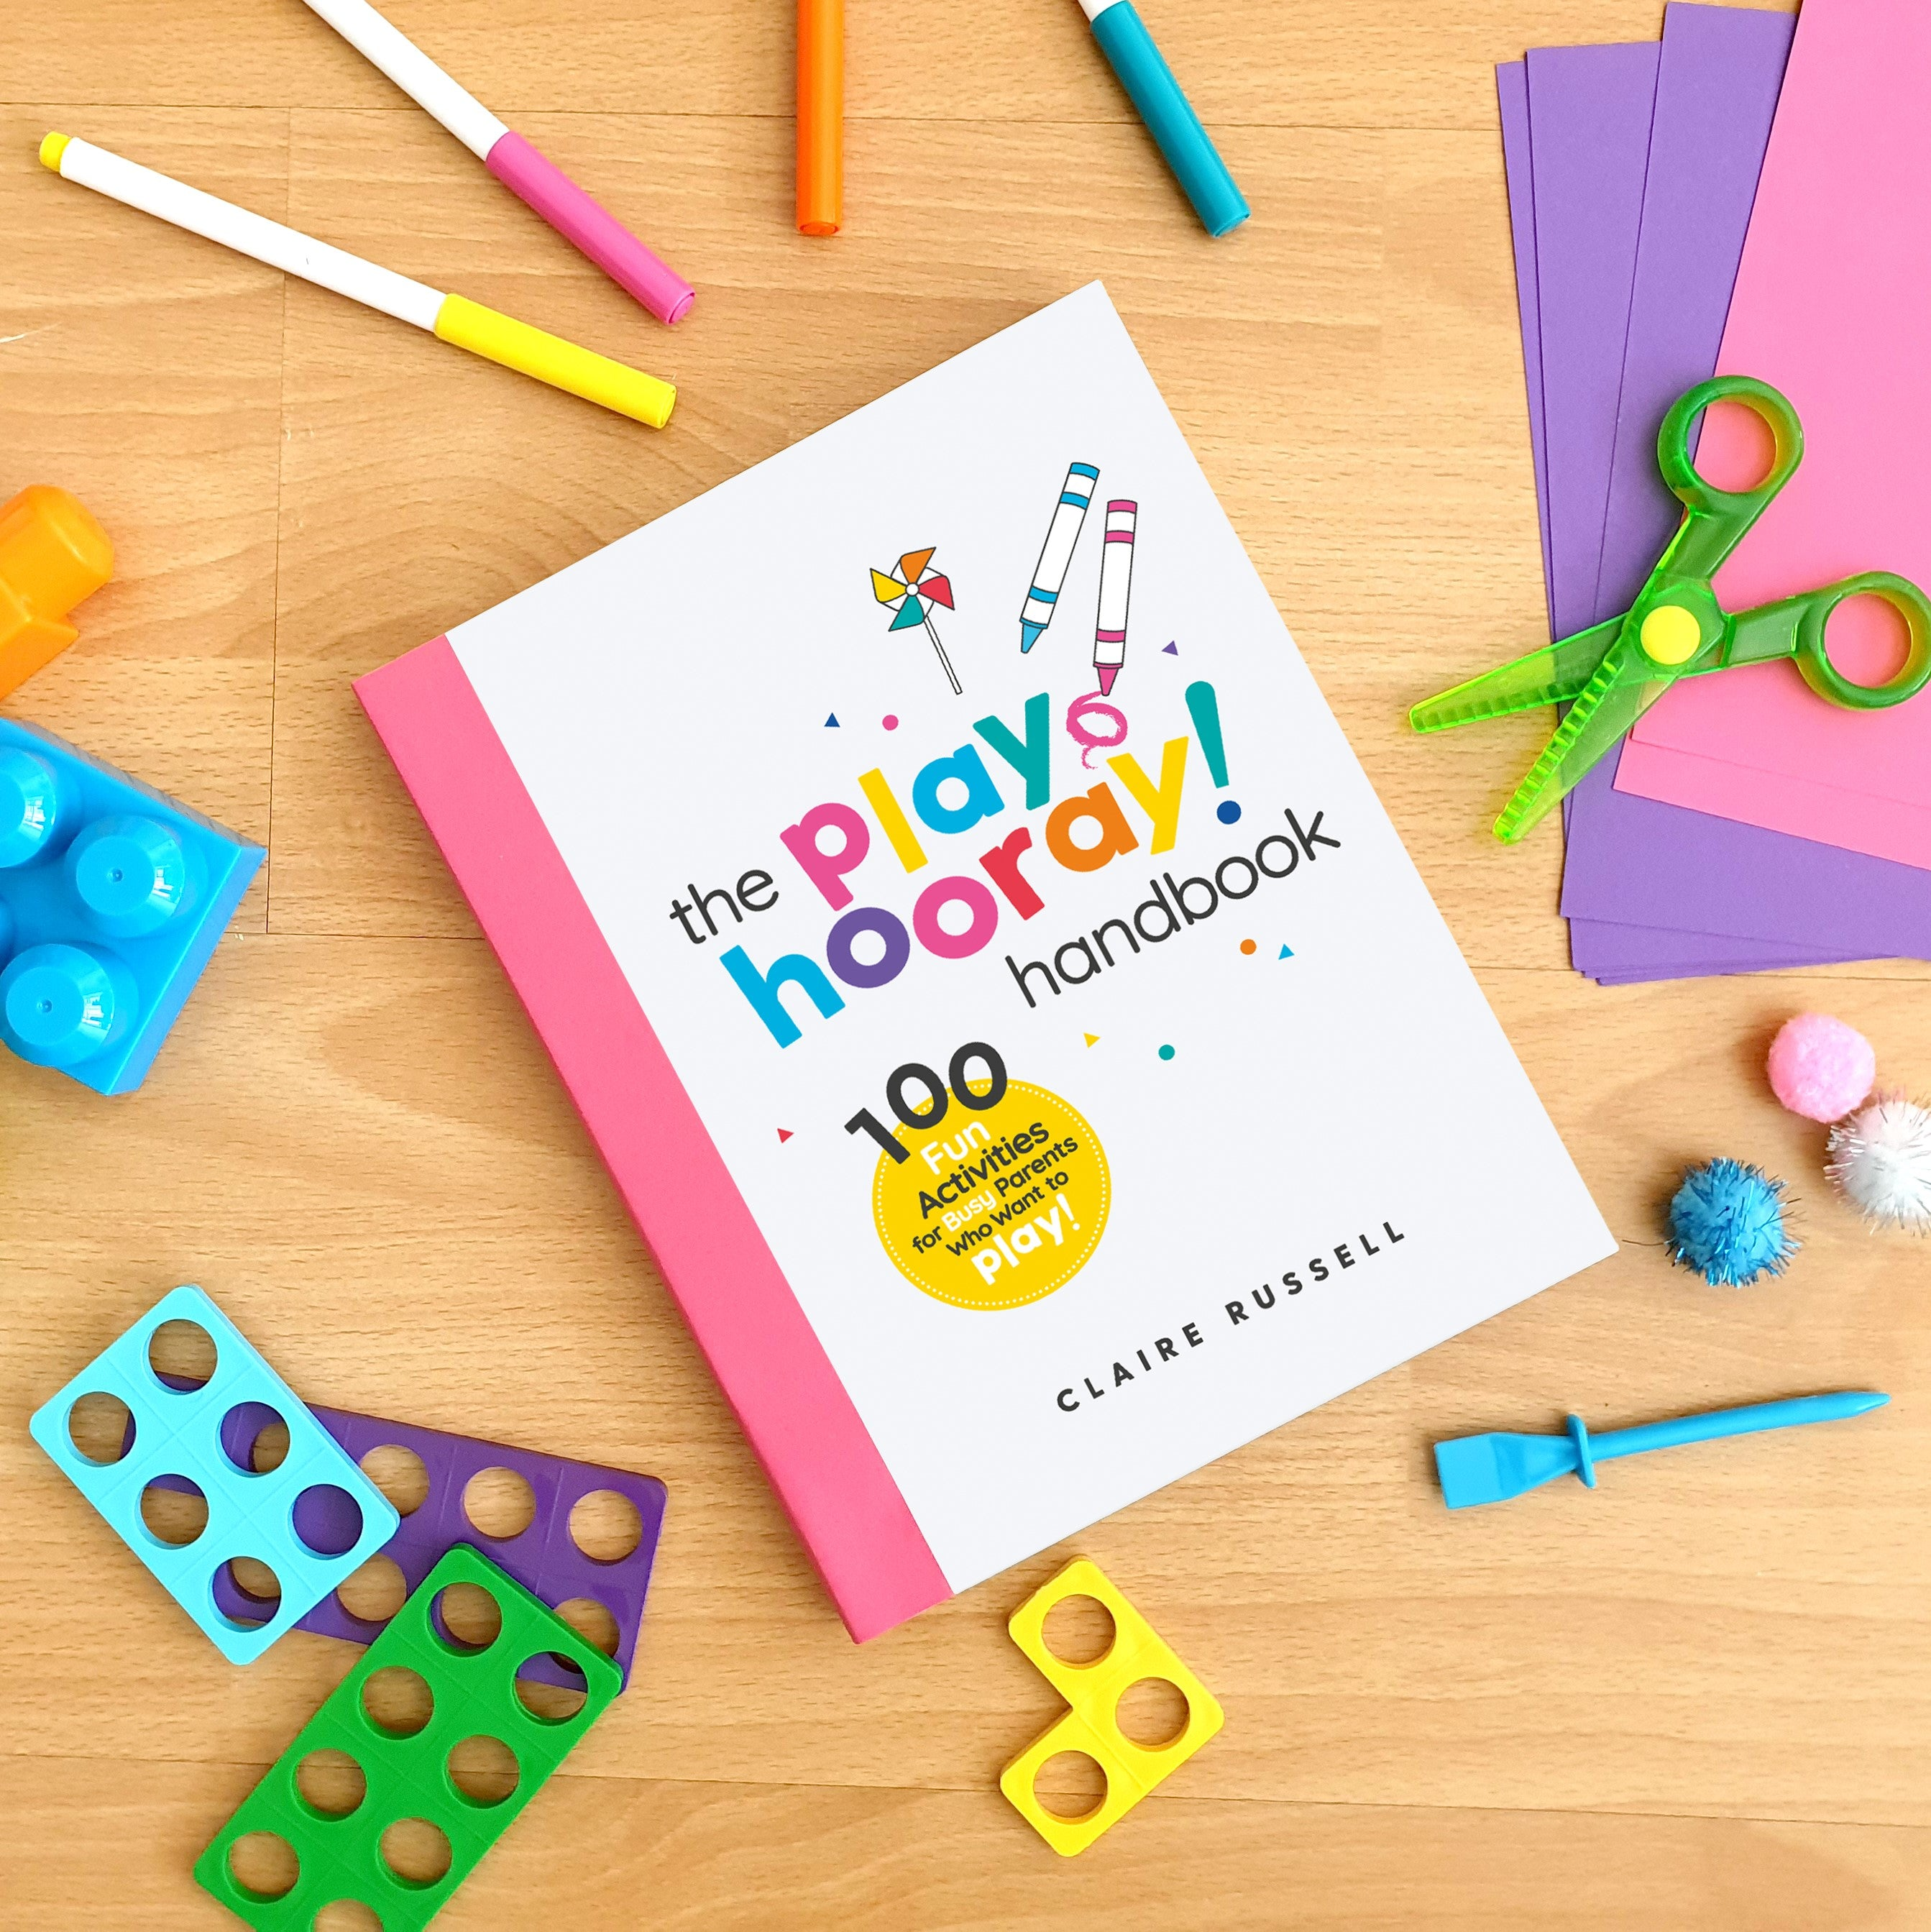 the playhooray handbook order preorder amazon book